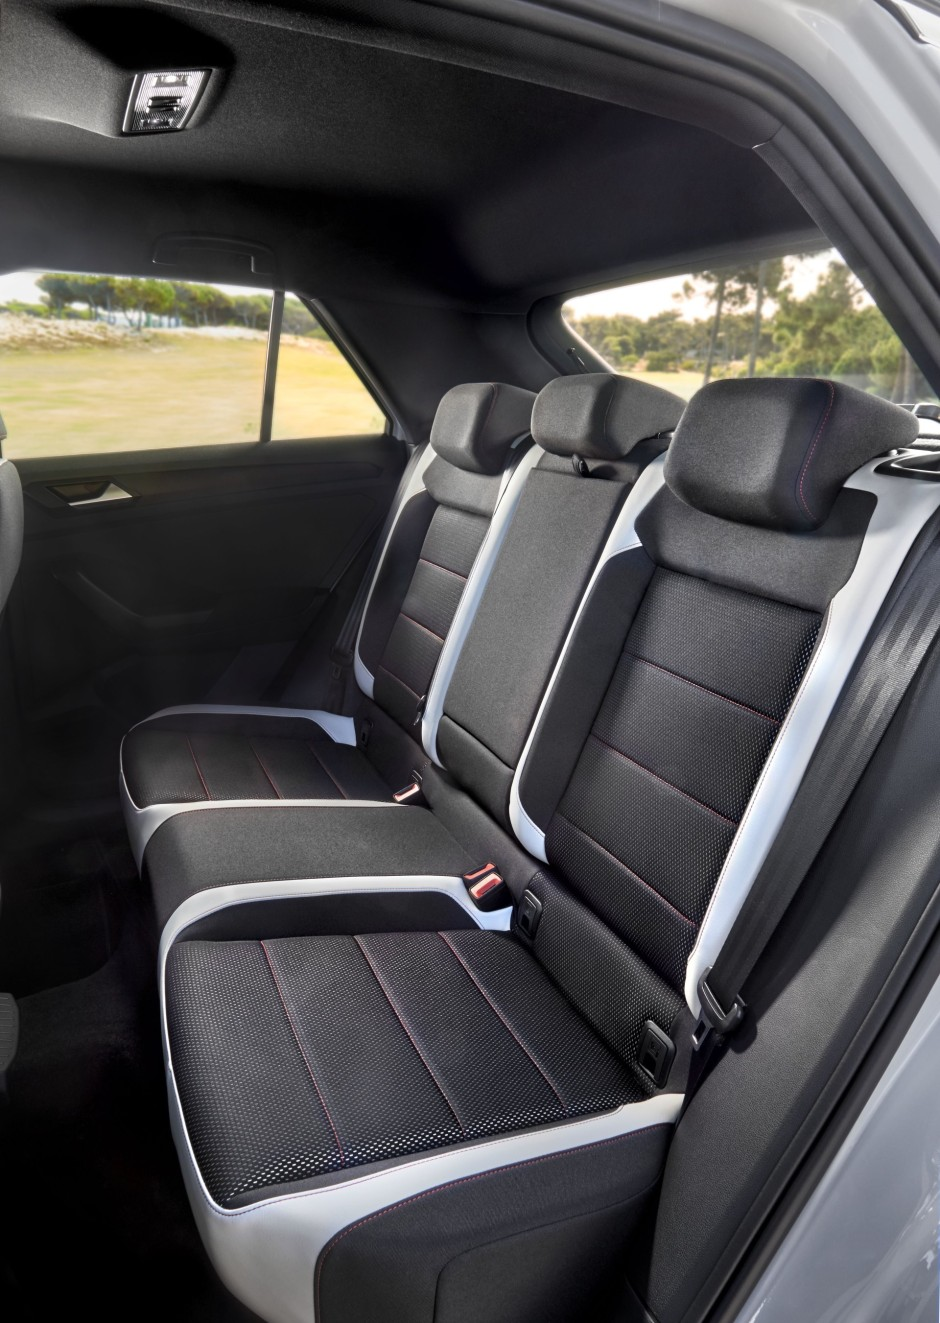 volkswagen t roc 2017 premier essai du nouveau suv de volkswagen photo 13 l 39 argus. Black Bedroom Furniture Sets. Home Design Ideas